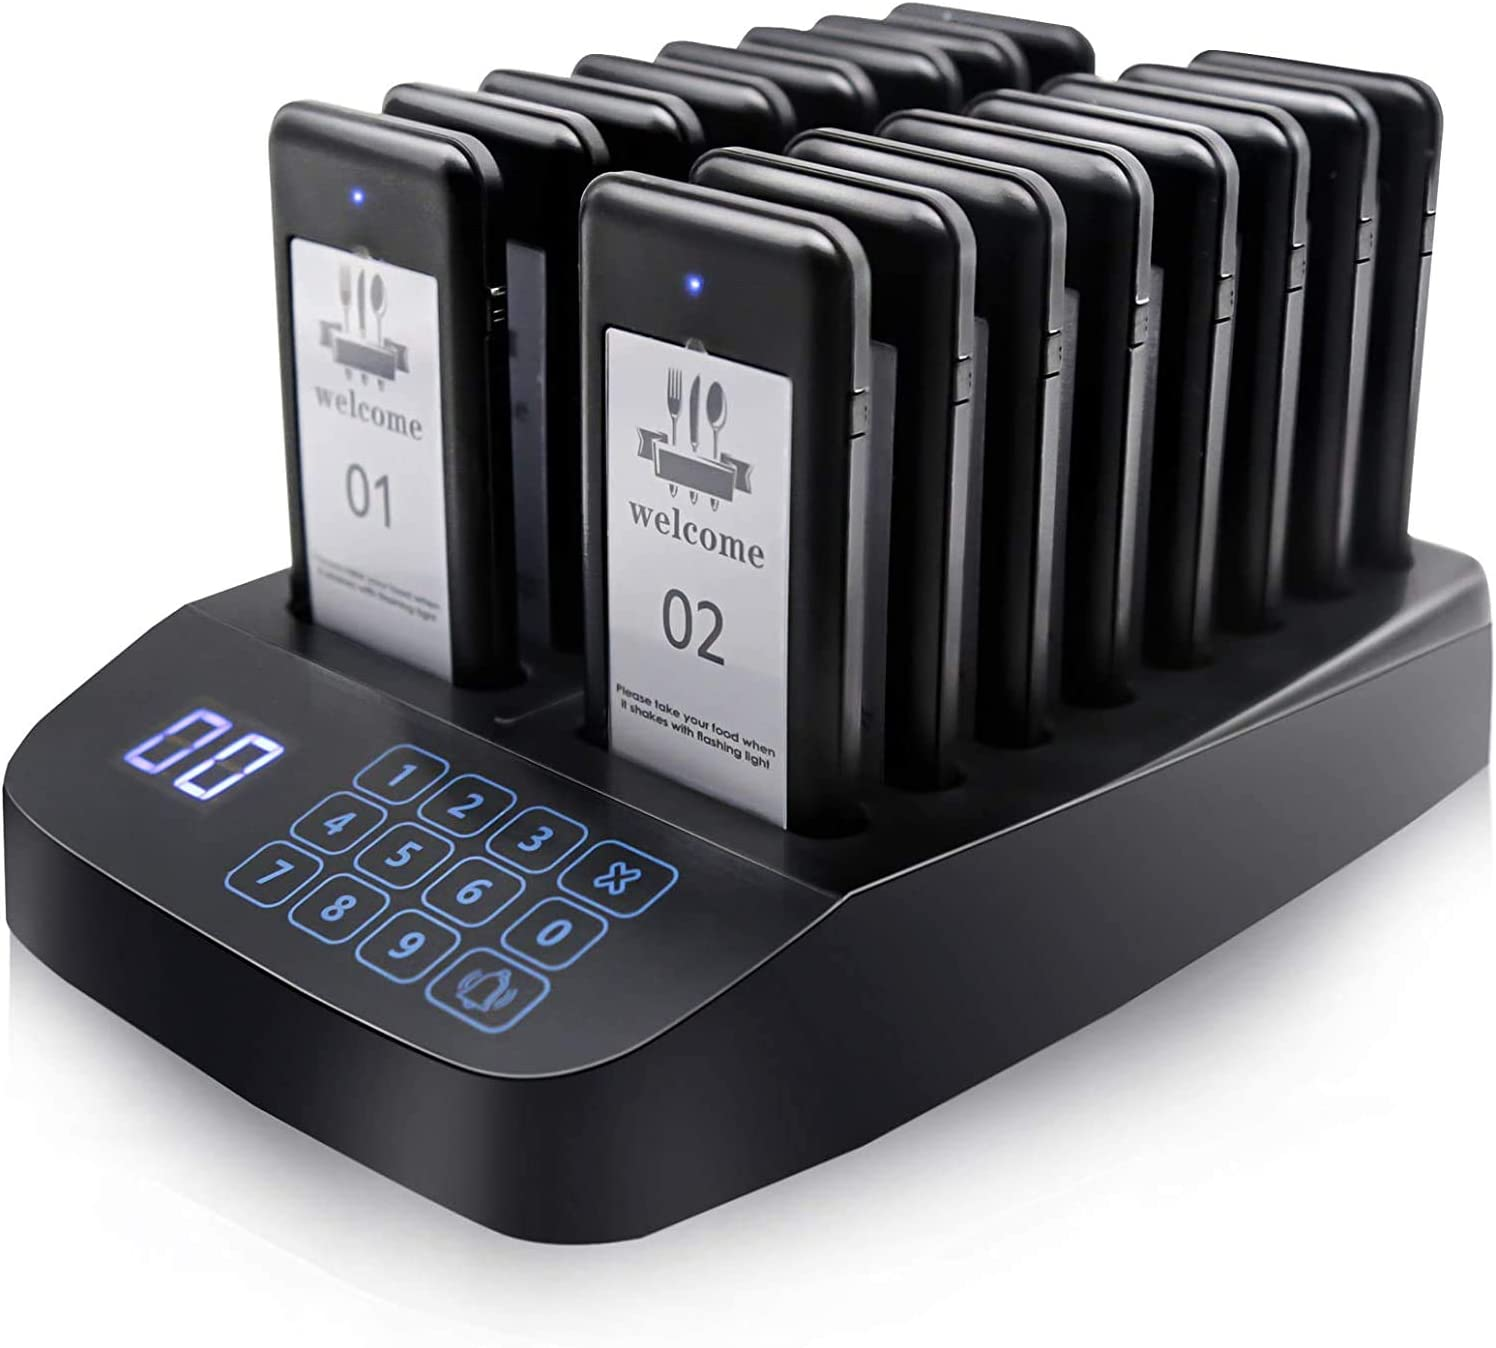 Wireless Restaurant Pager System,Paging System with 16 Pieces Rechargeable Buzzer Coaster Pagers,Touch Screen keypad Call Button for Food Truck, Clinic,Church,Coffee,Shop,Bakery